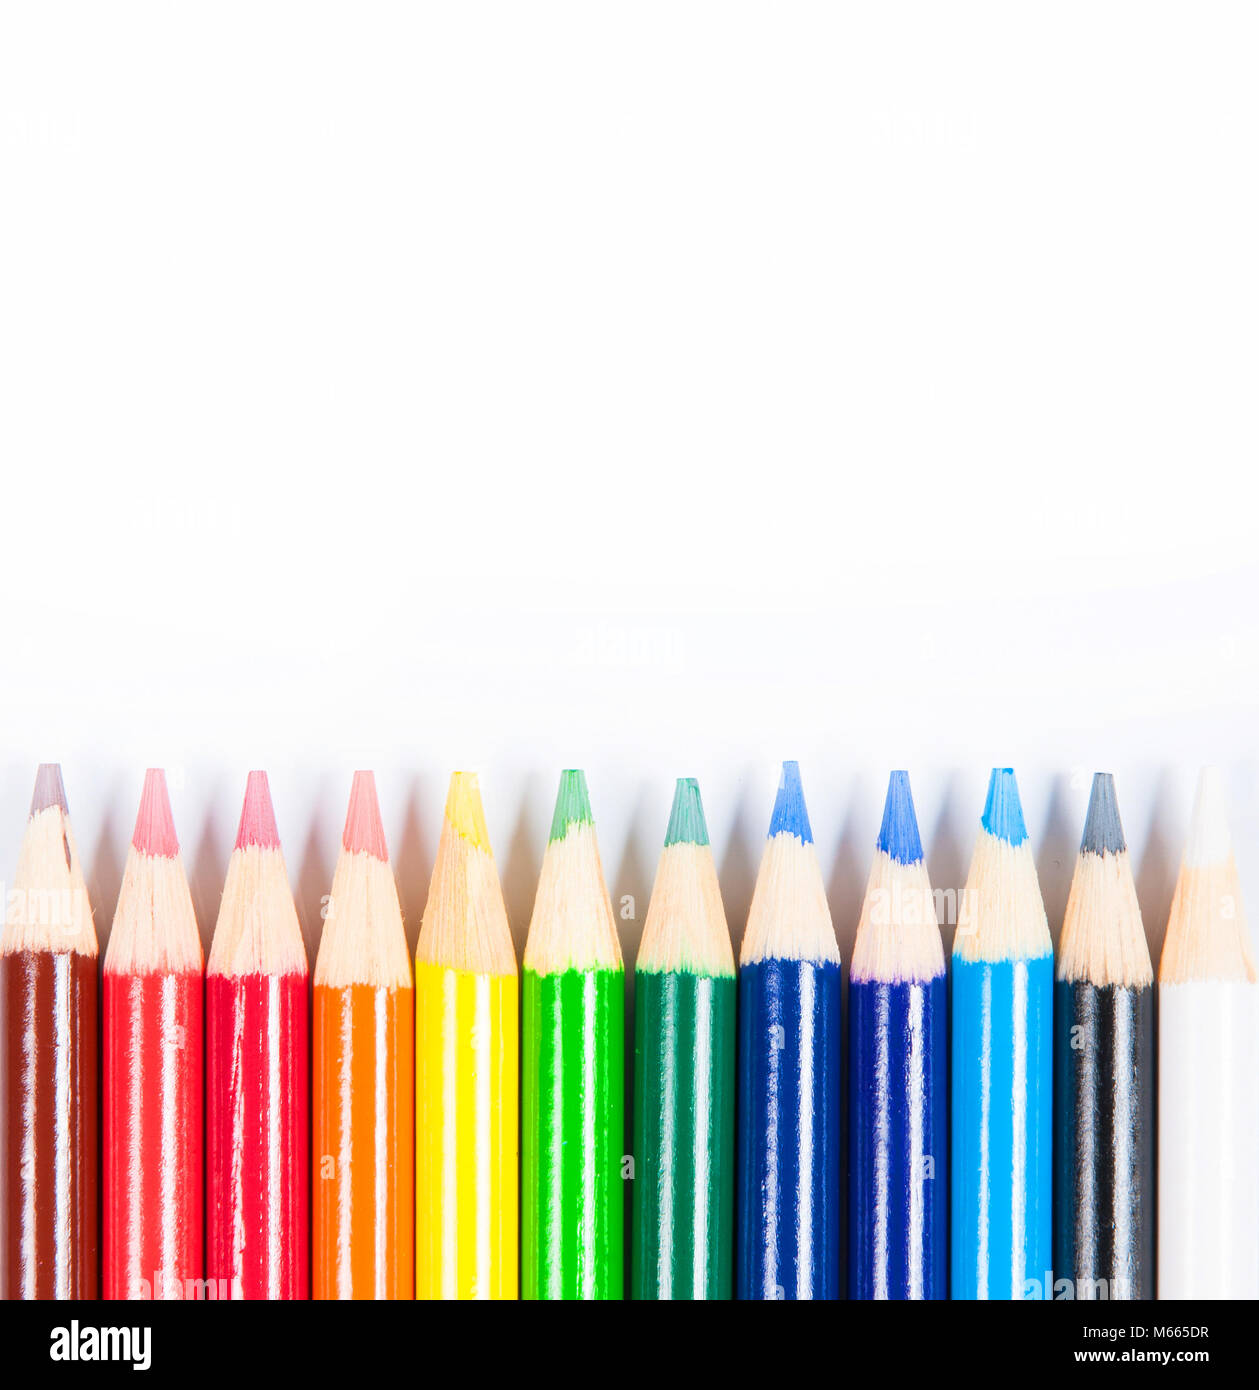 Coloured pencils isolated on the white background. Back to school - Stock Image